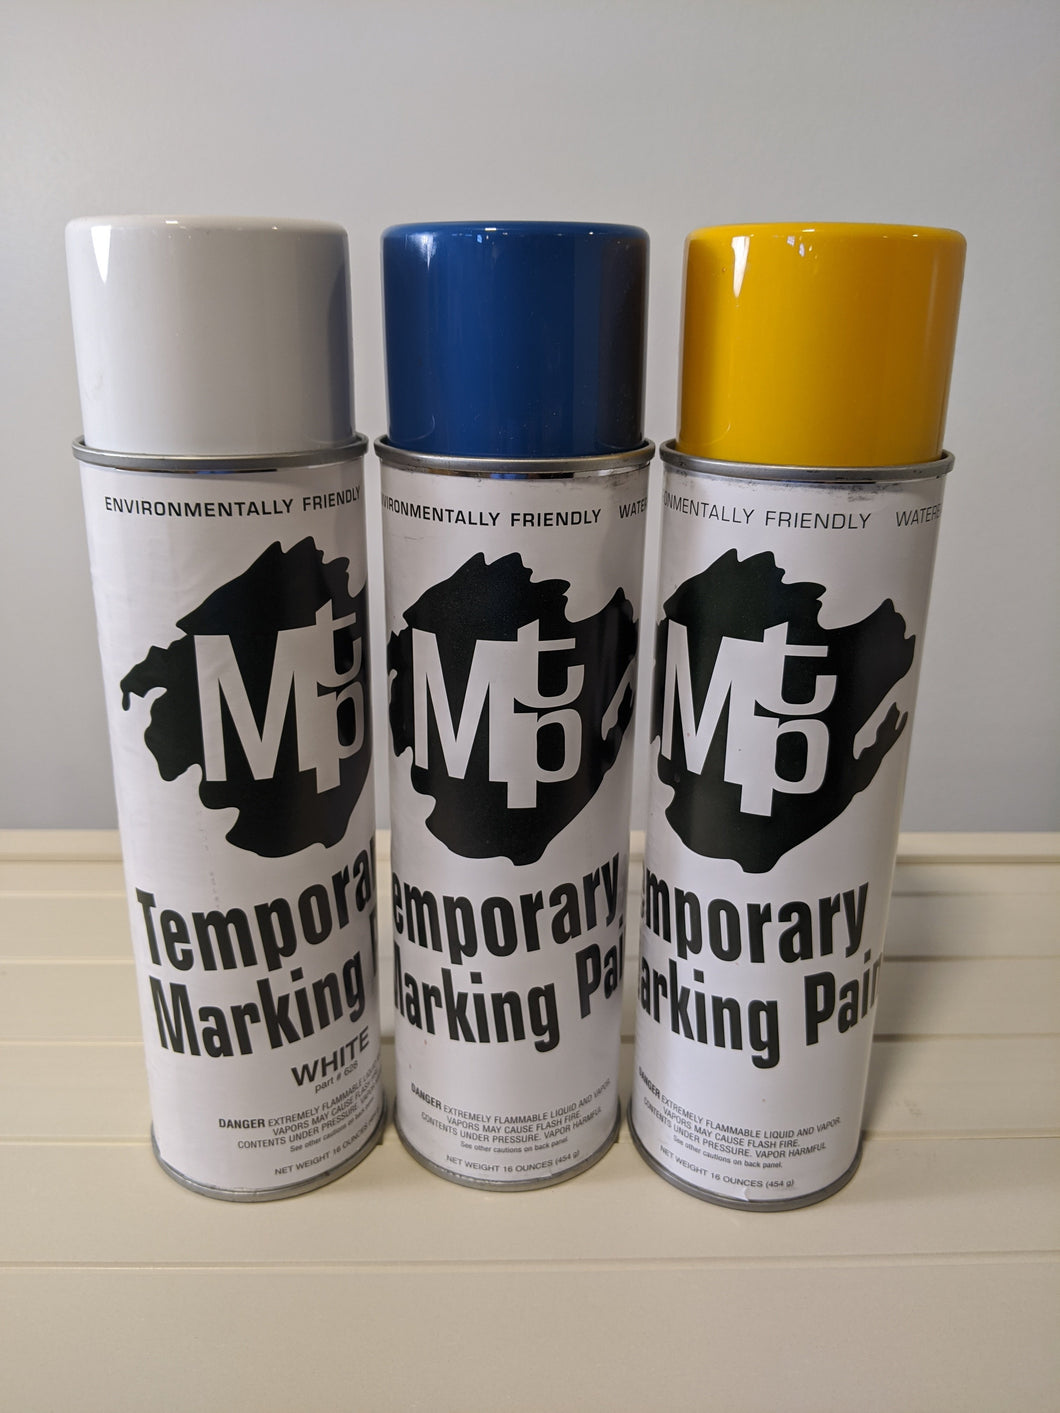 Temporary Marking Paint - New Orleans Area Habitat for Humanity ReStore (Williams Blvd Only)